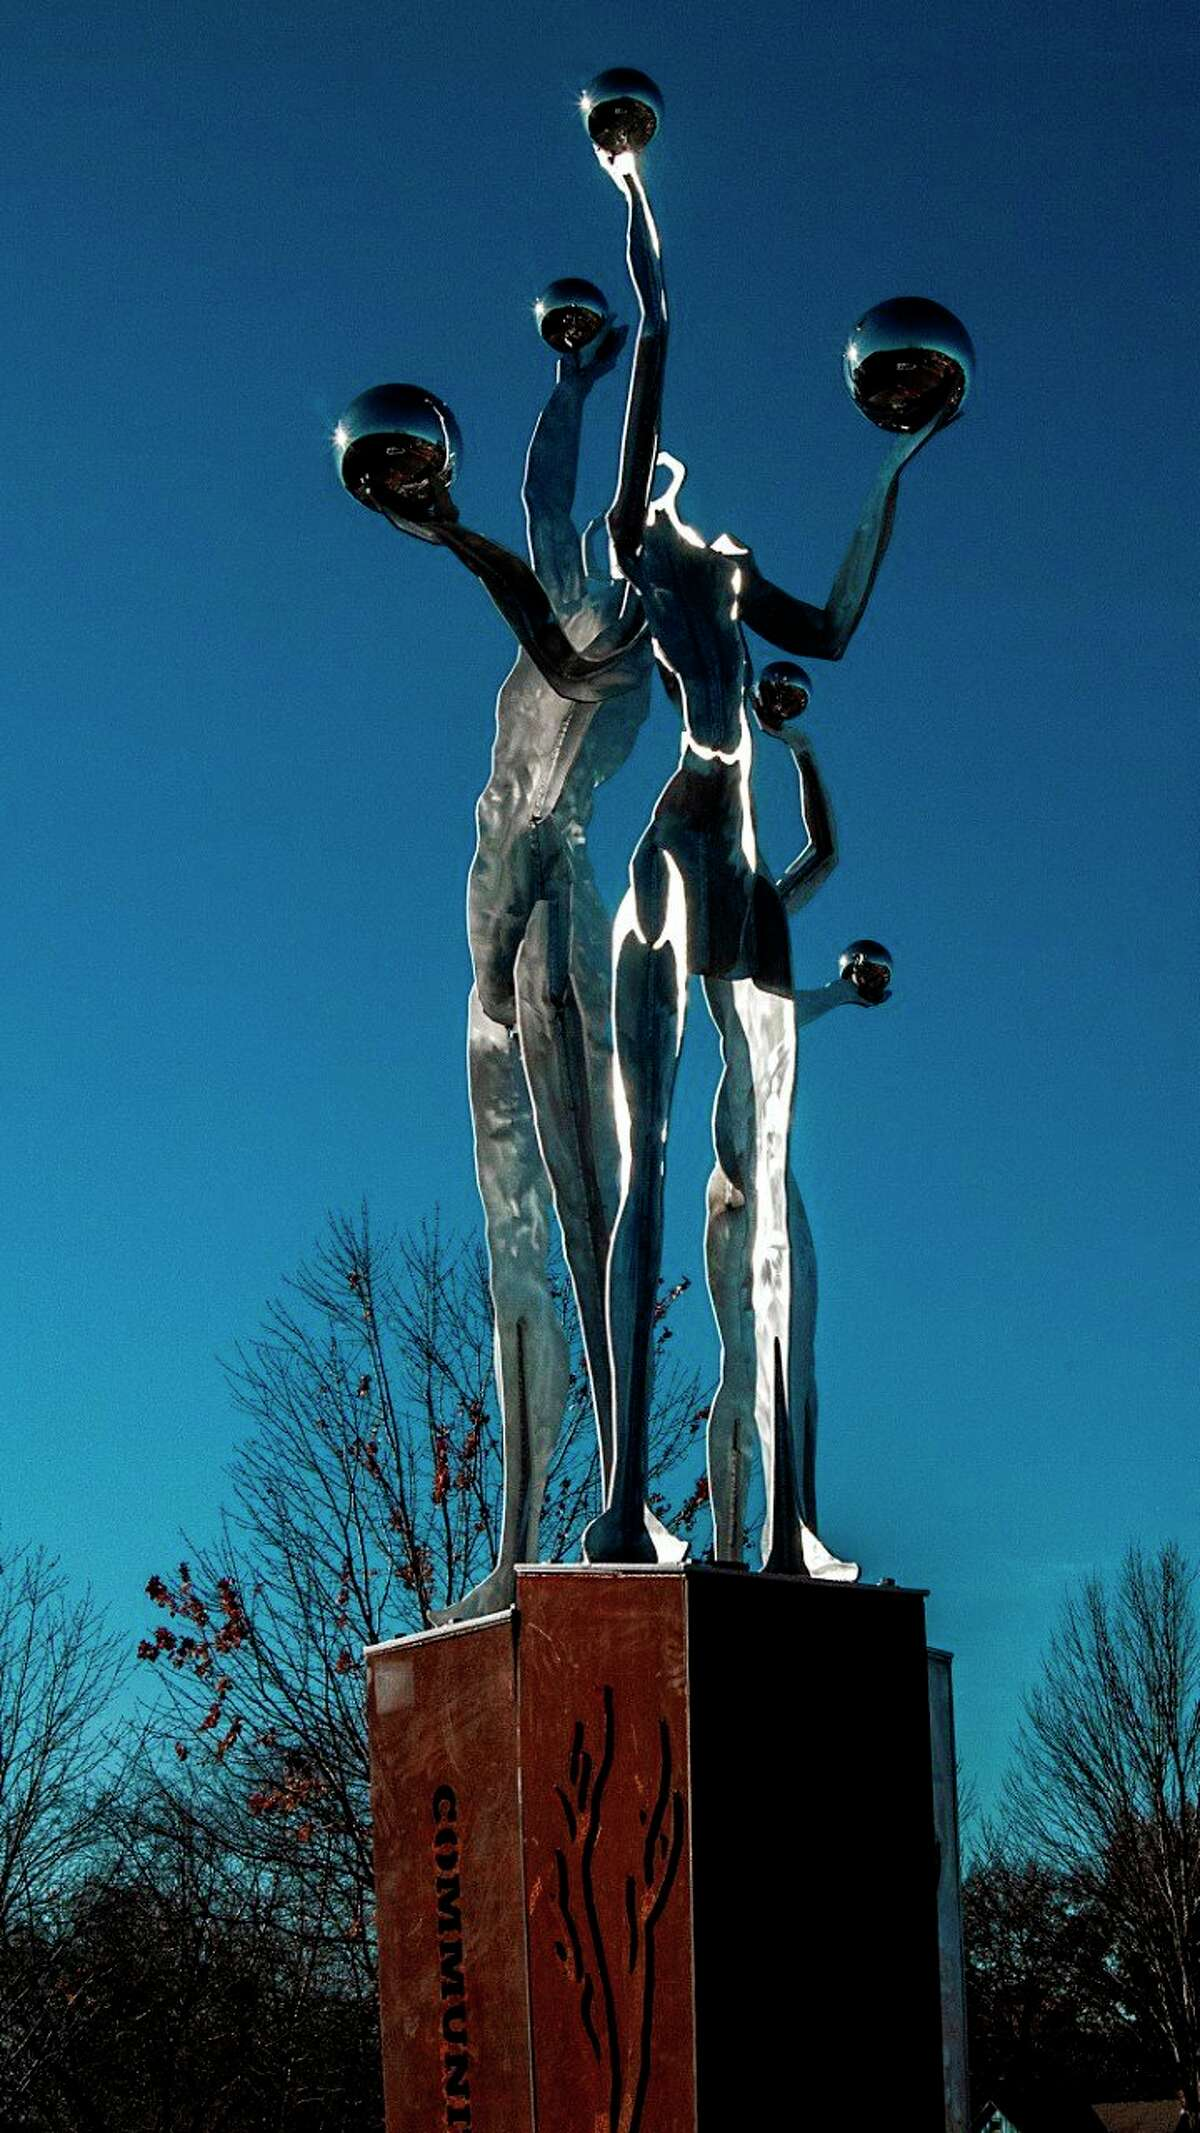 """""""Ascending"""" is a 20-foot tall sculpture, featuring three figures atop individual podiums. Robert Barnum was commissioned to create the piece by community members in Blue Springs, Missouri. (Courtesy photo)"""